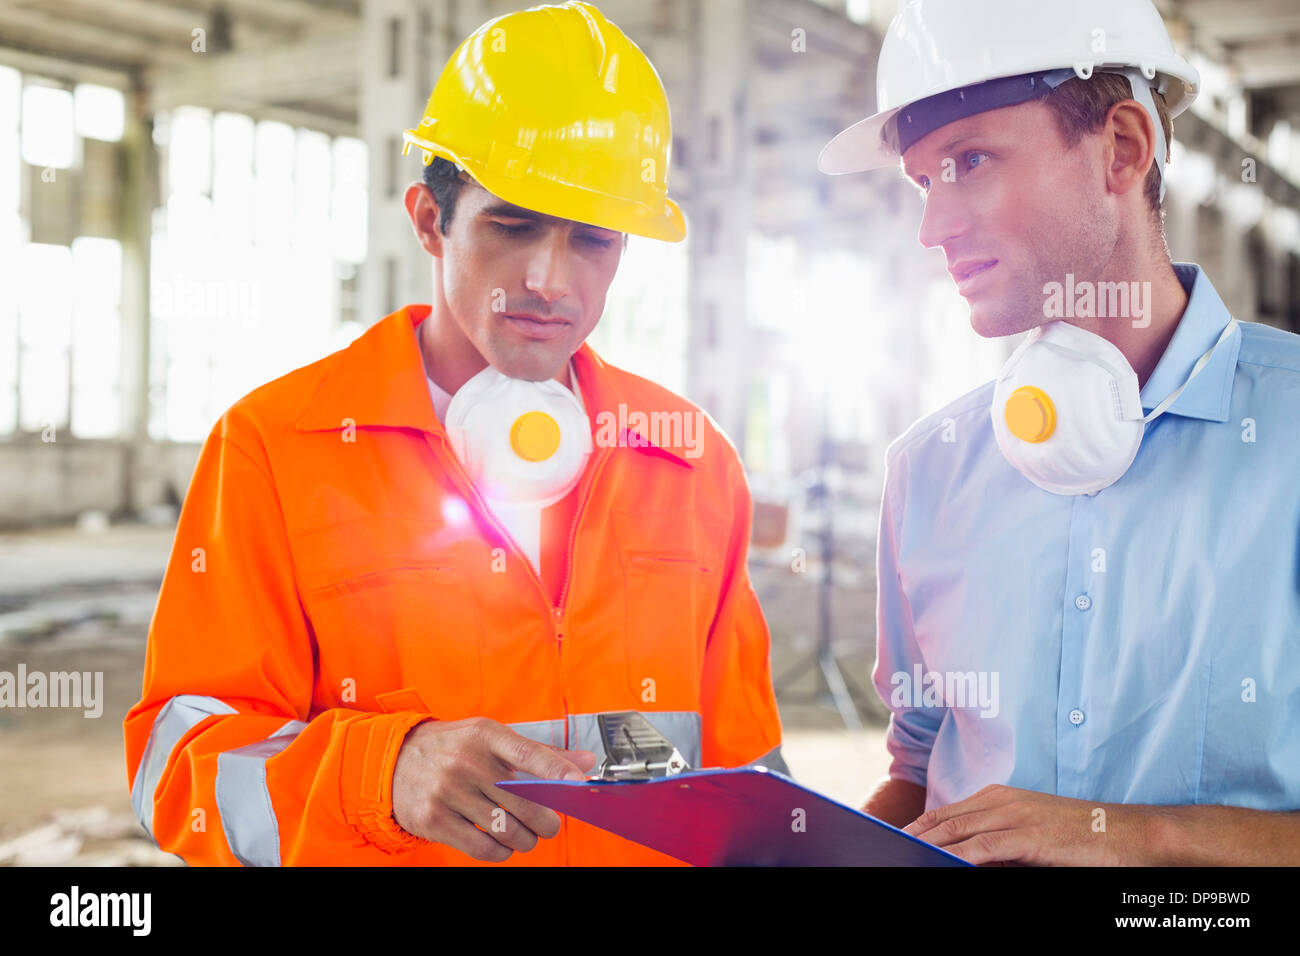 Male architects in protective workwear discussing at construction site - Stock Image